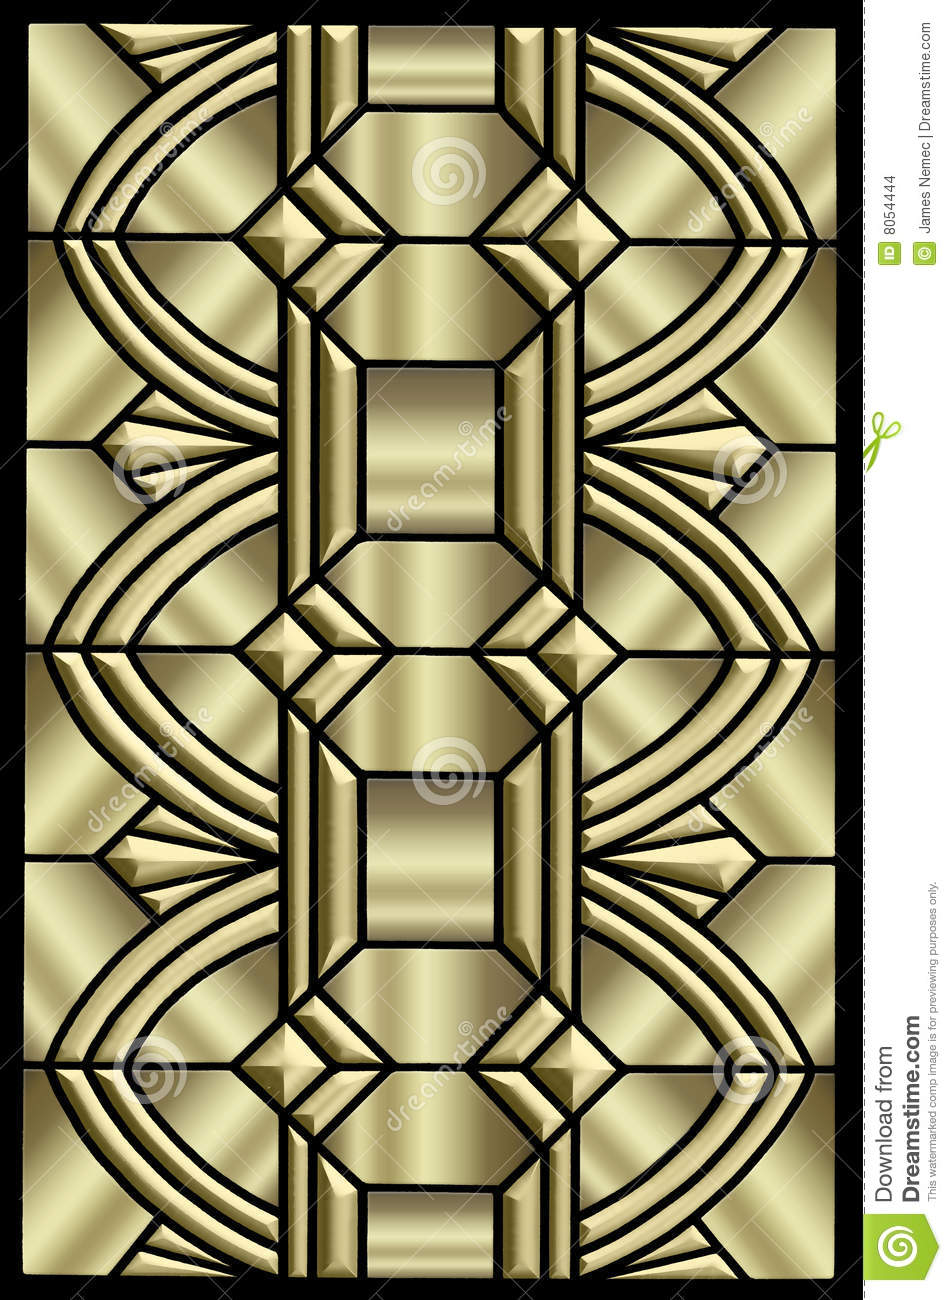 Metallic art deco design stock images image 8054444 for Design and deco